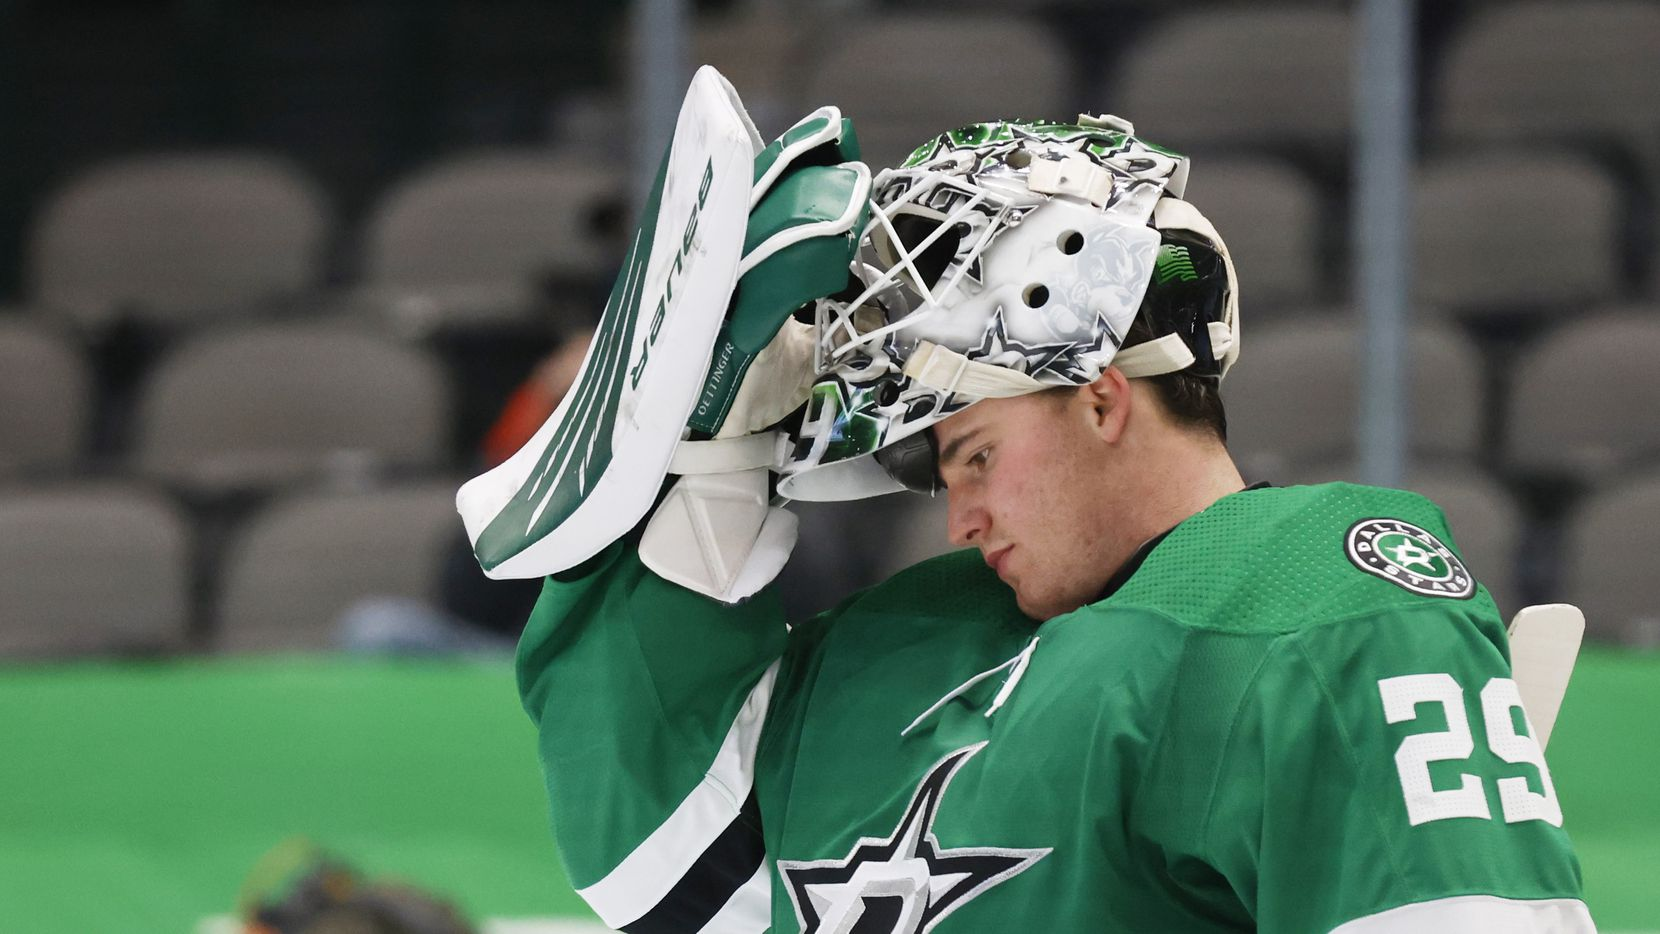 Dallas Stars goaltender Jake Oettinger (29) gets ready for the start of the second period of play against the Chicago Blackhawks at American Airlines Center on Tuesday, February 9, 2021in Dallas.